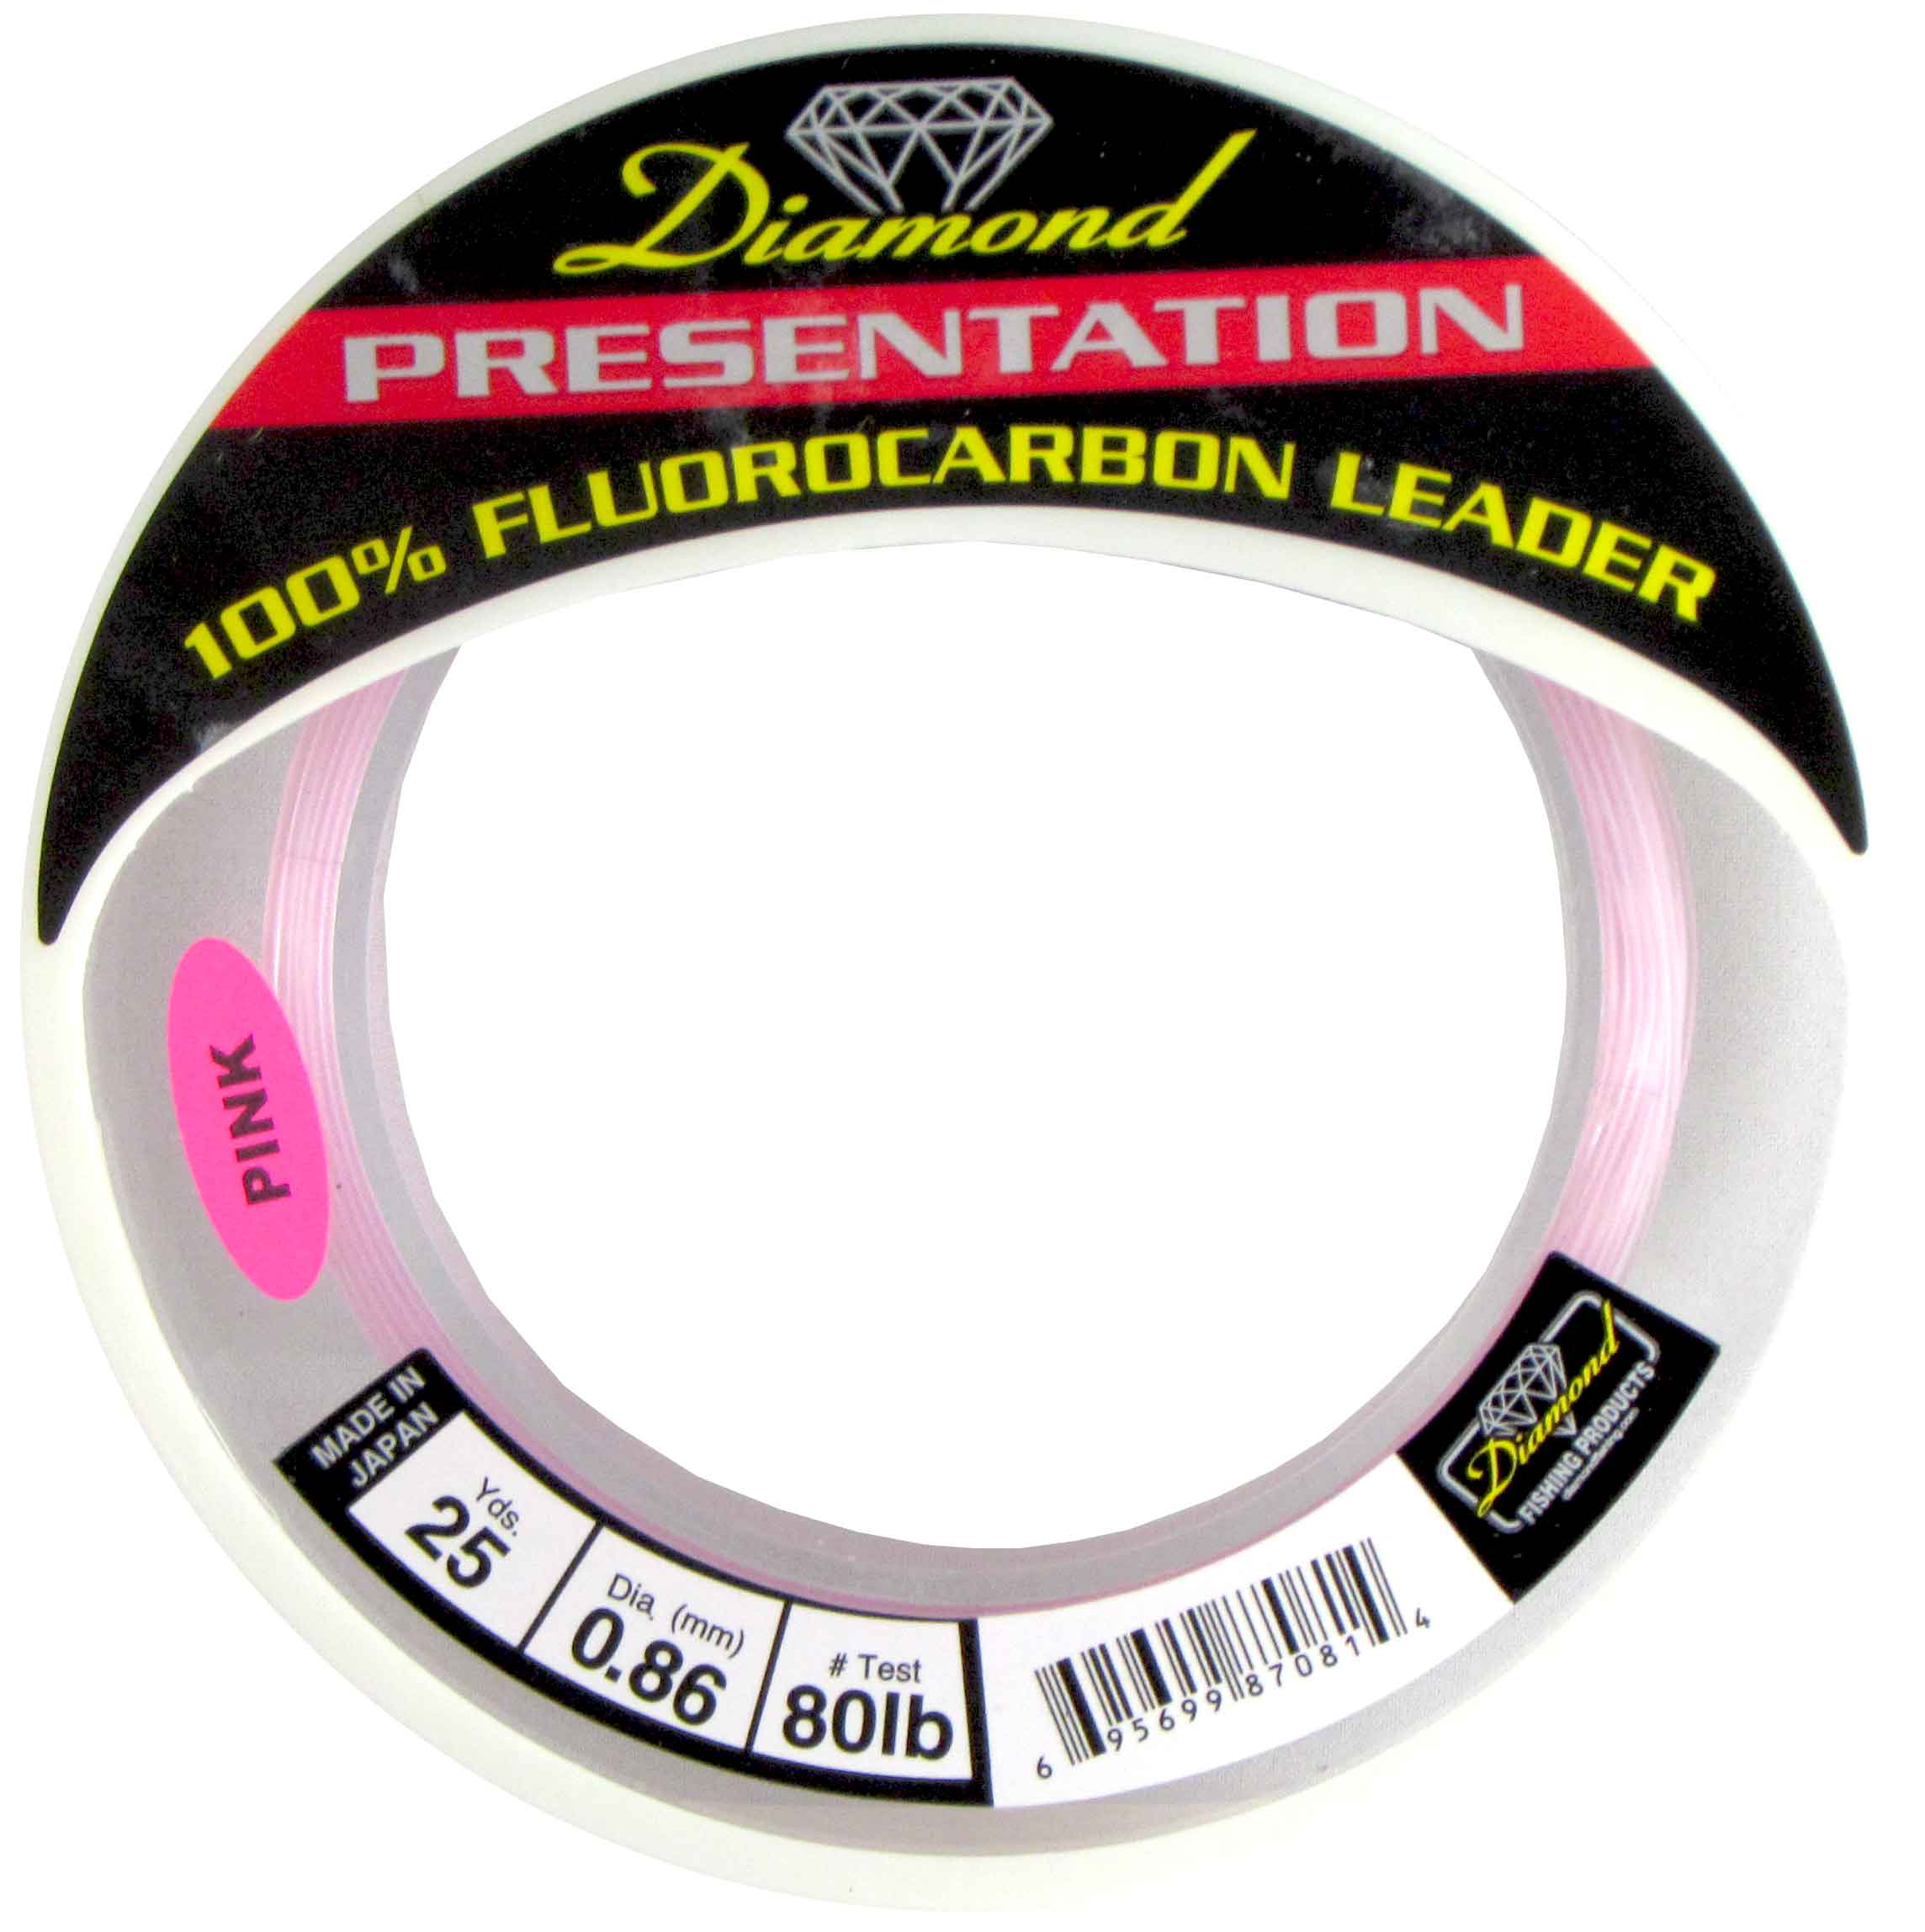 MOMOI Diamond Presentation Fluorocarbon Leader 80Lb Test 25Yds Pink